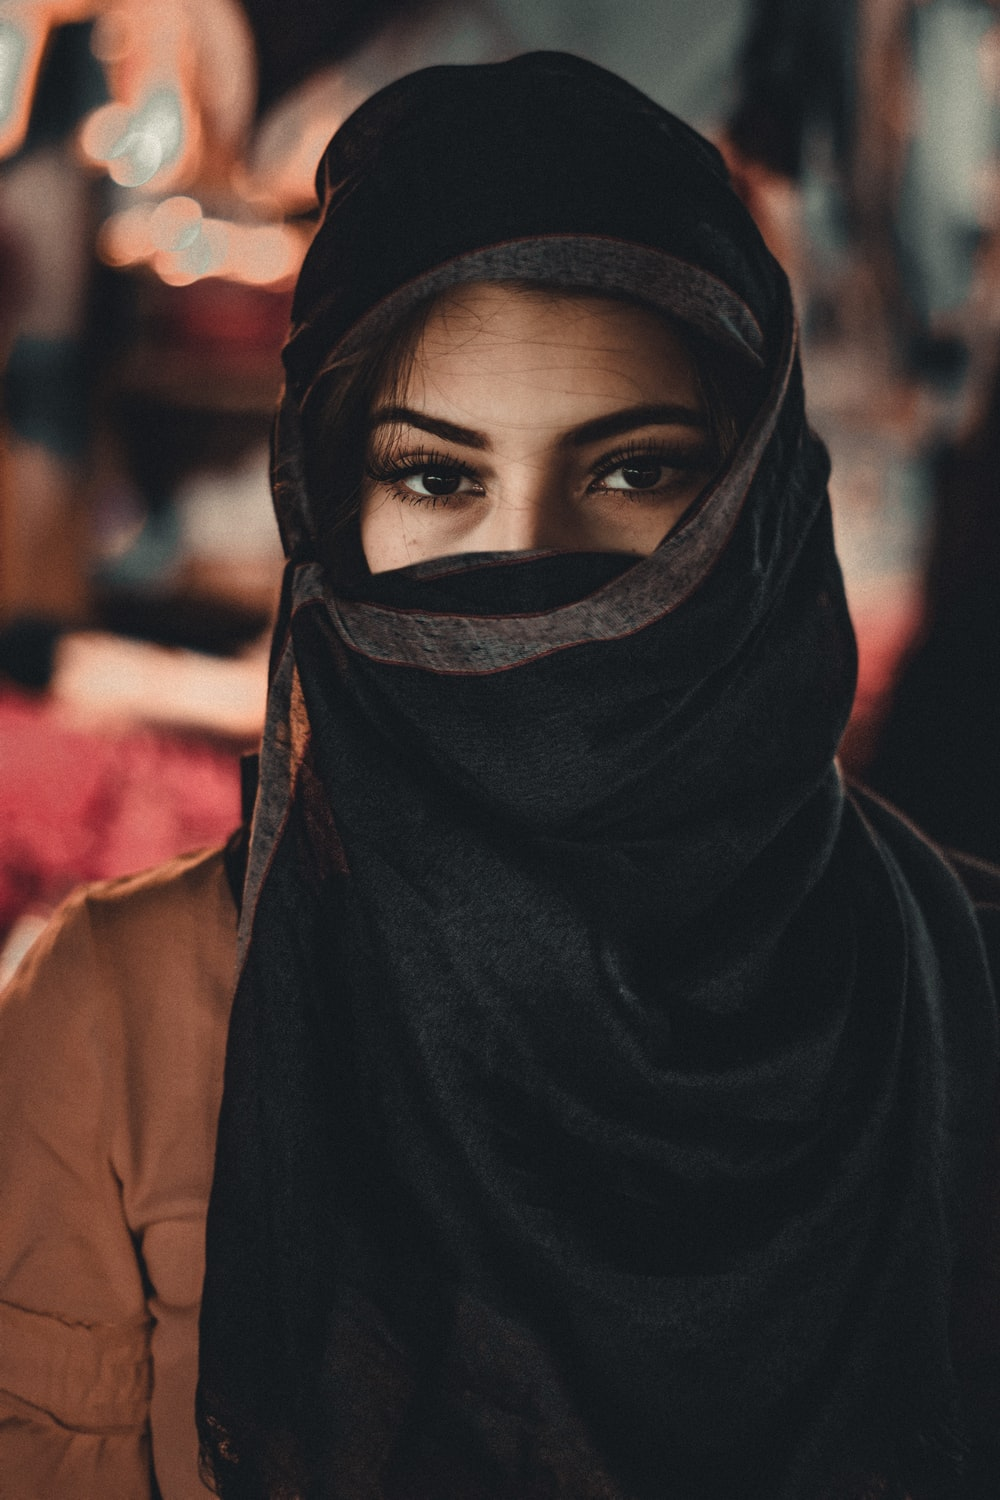 woman in black hijab standing photo – Free Clothing Image on Unsplash